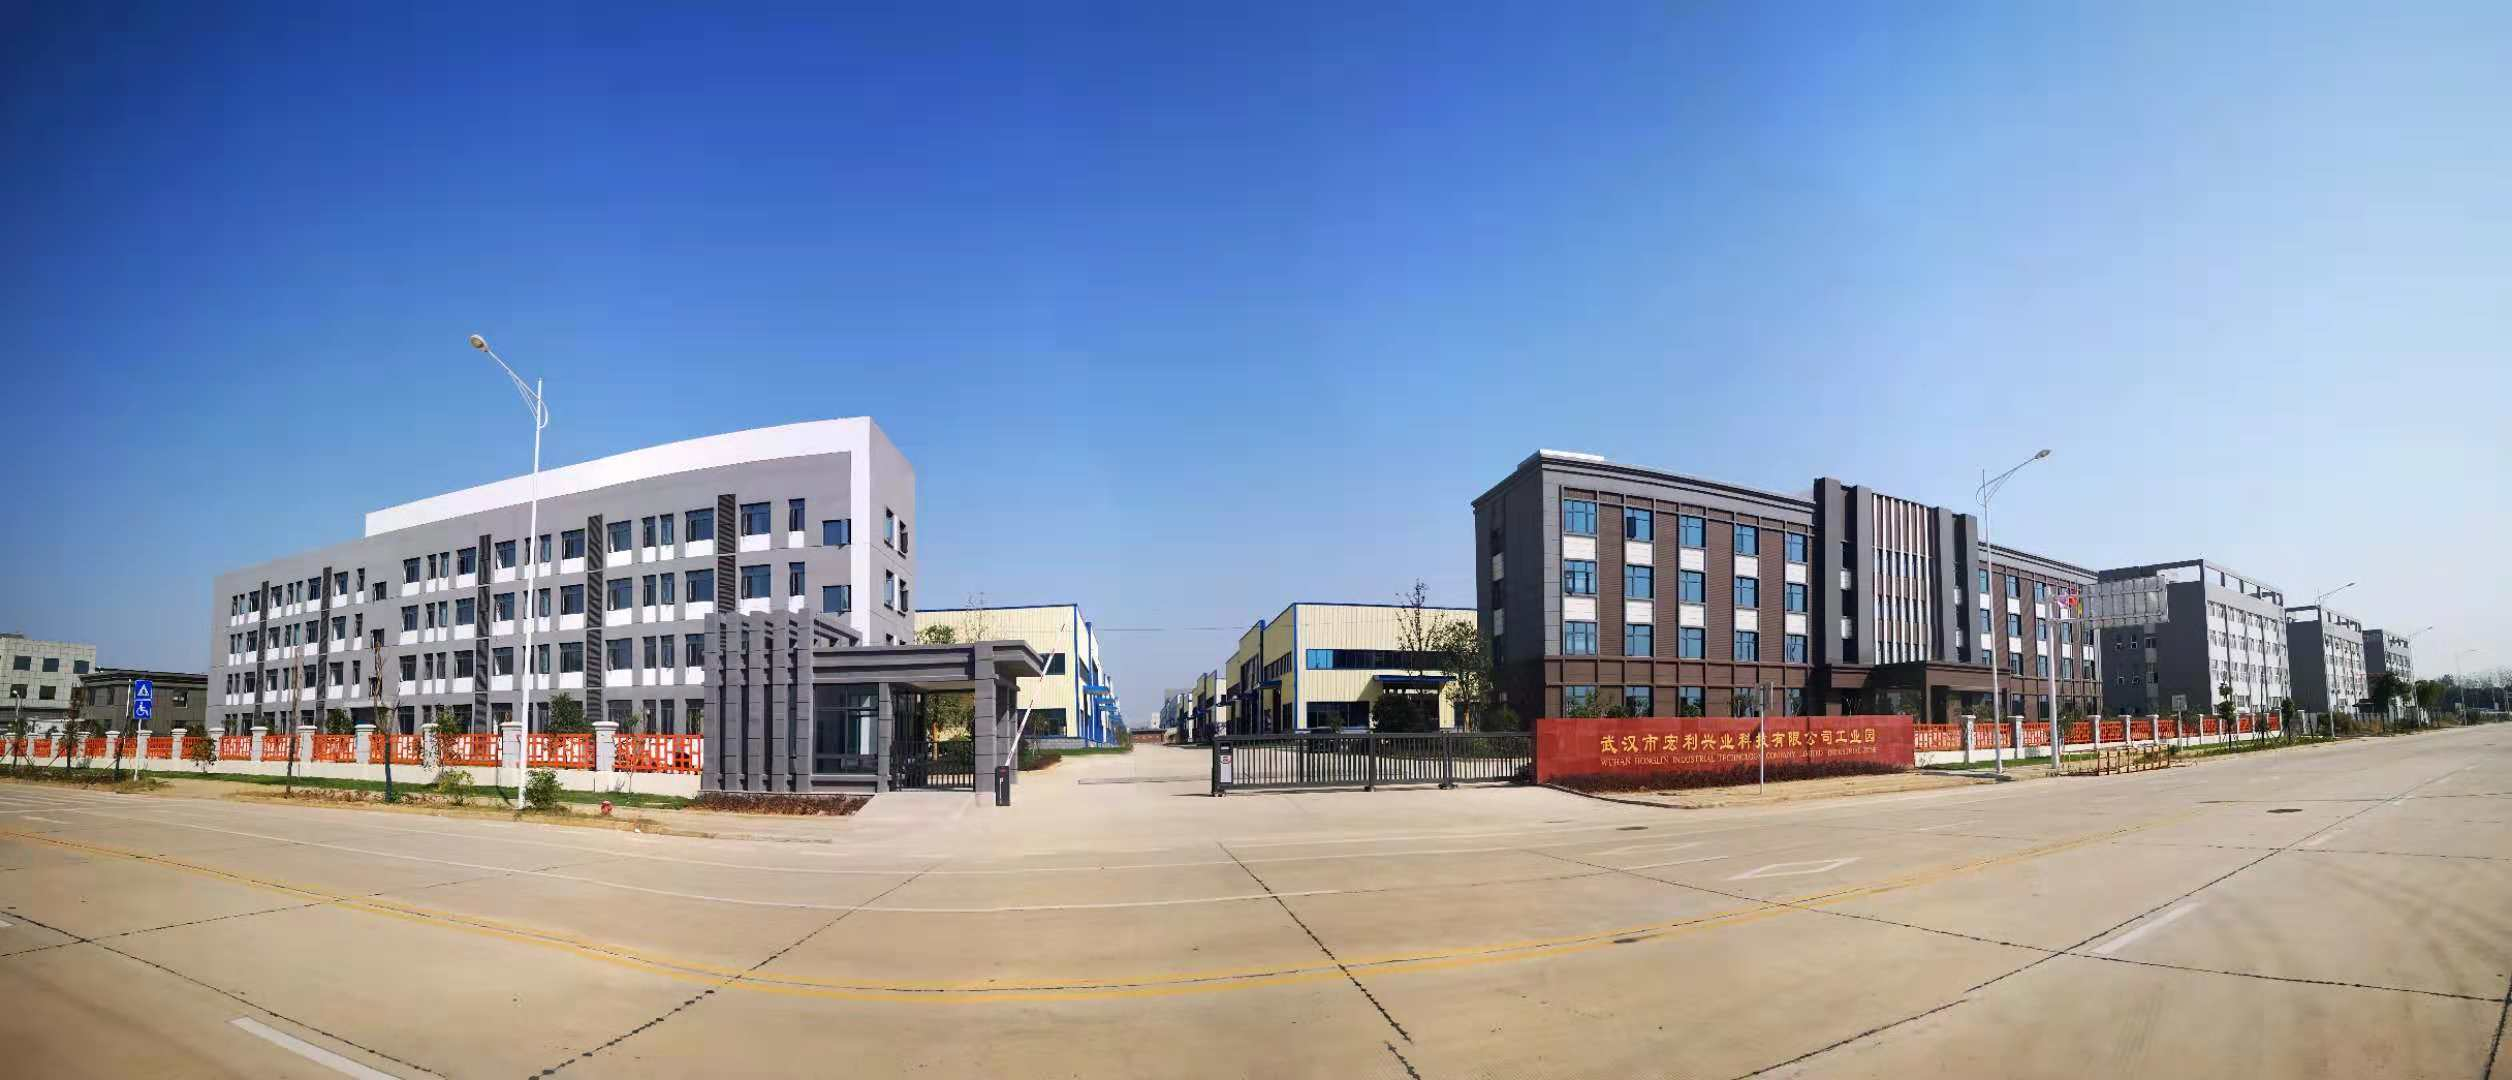 HLM Mold Factory